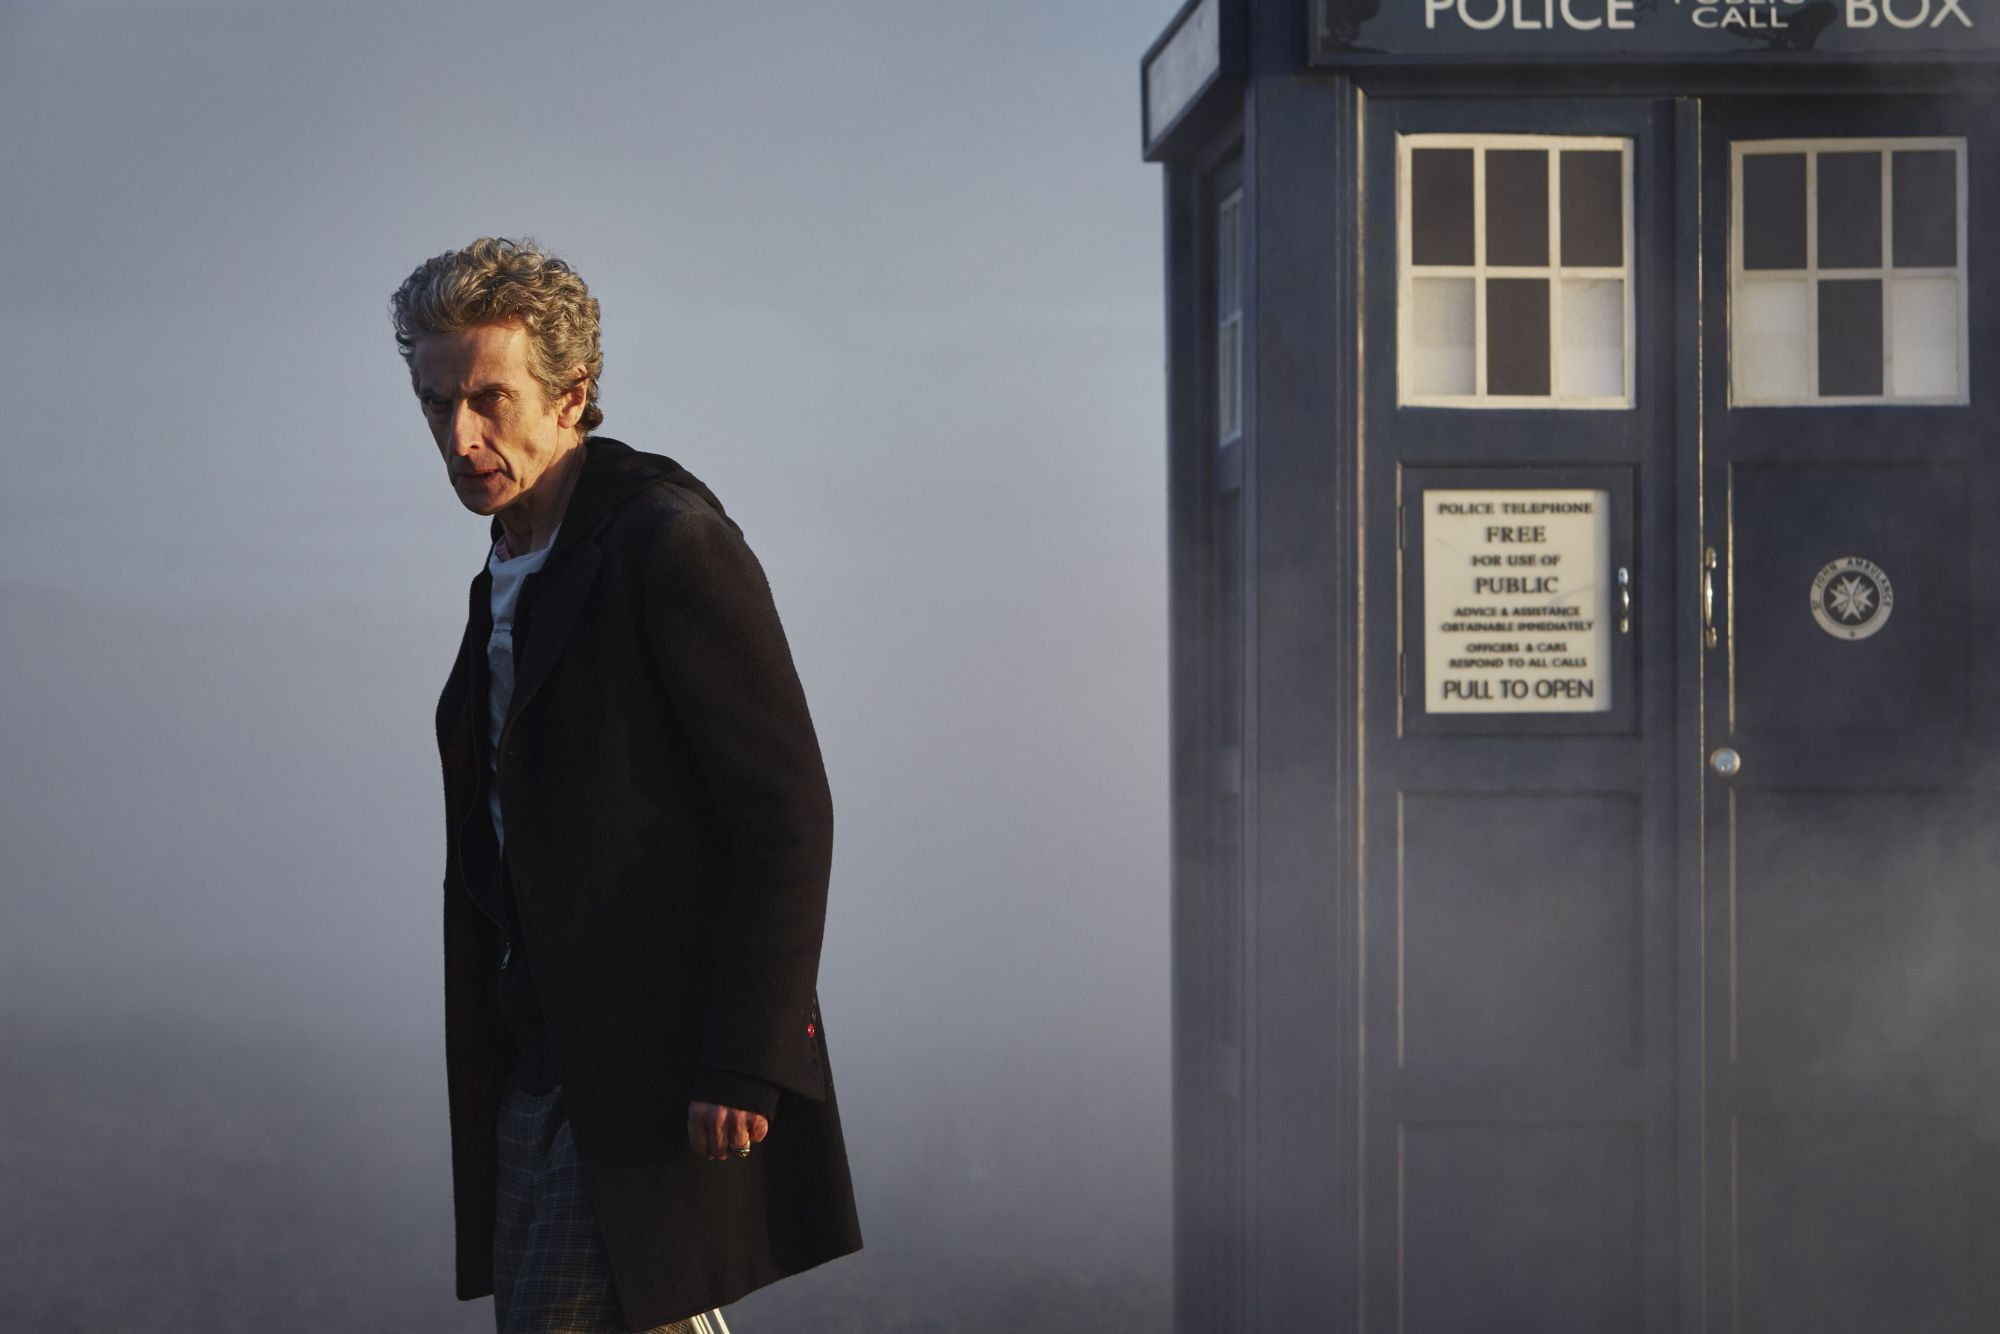 The Witch's Familar: Peter Capaldi as The Doctor (Credit: BBC/Simon Ridgway)